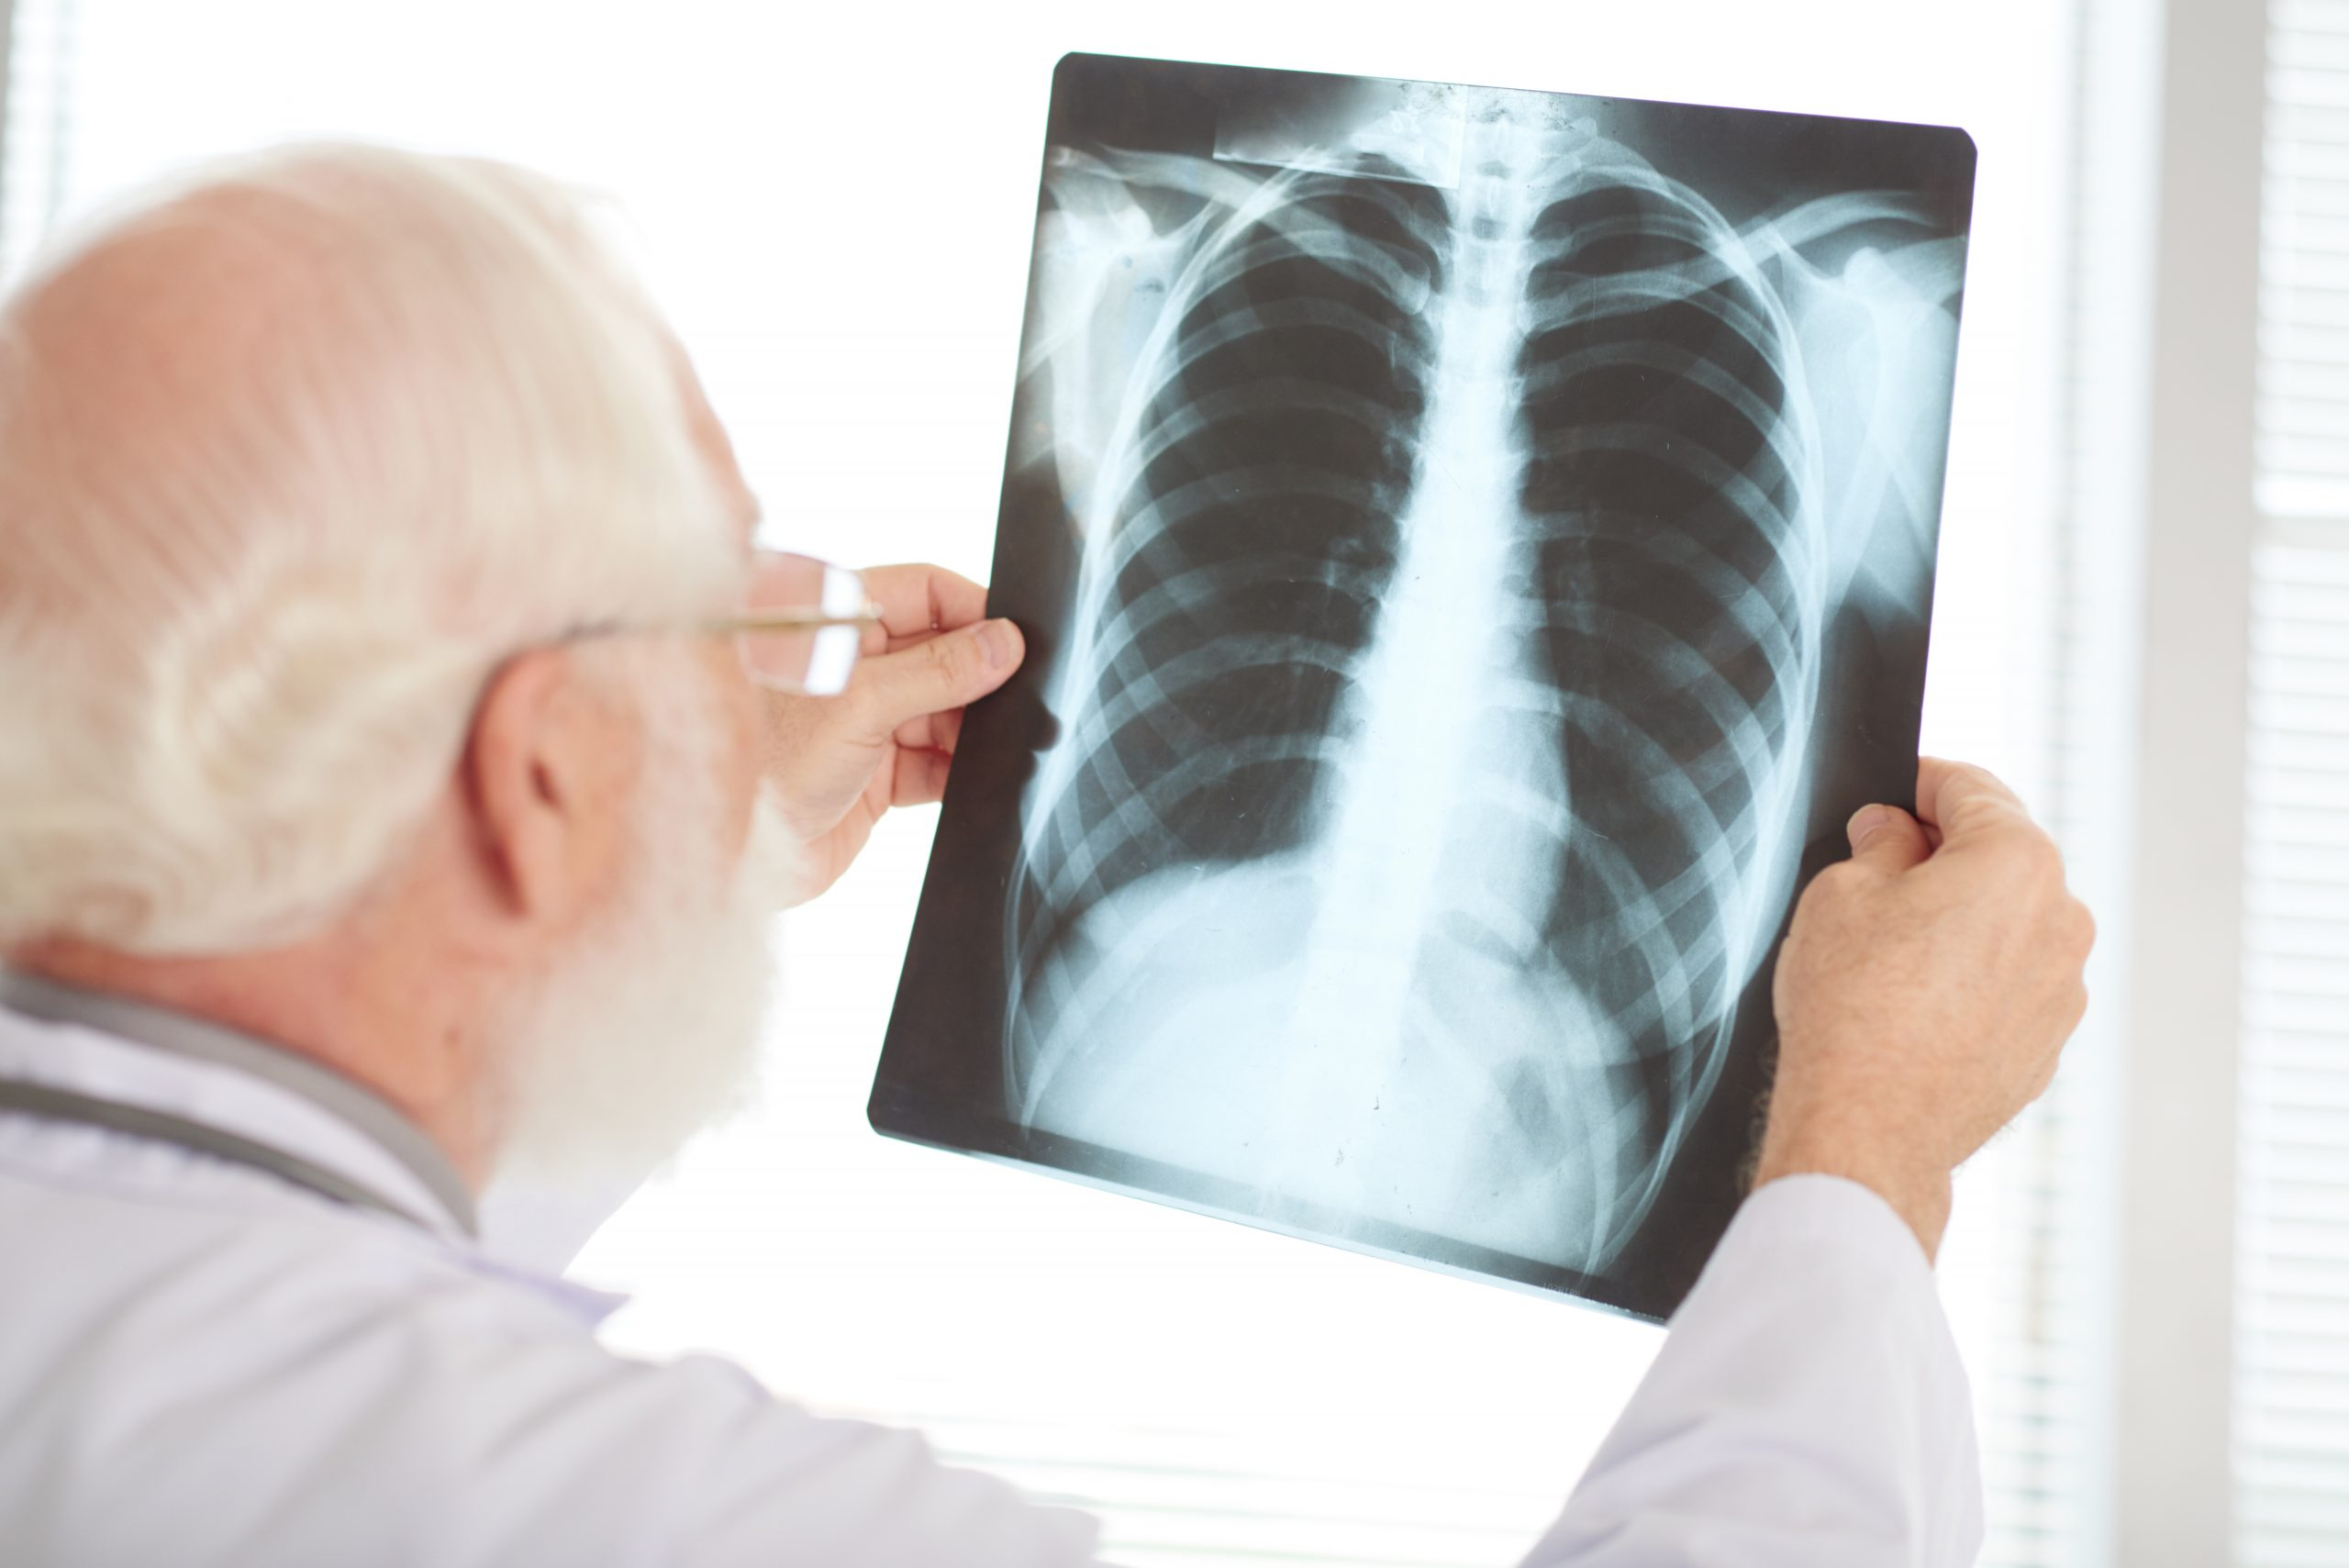 Checking x-ray | Featured Image for Broken Bones That Won't Heal | Blog